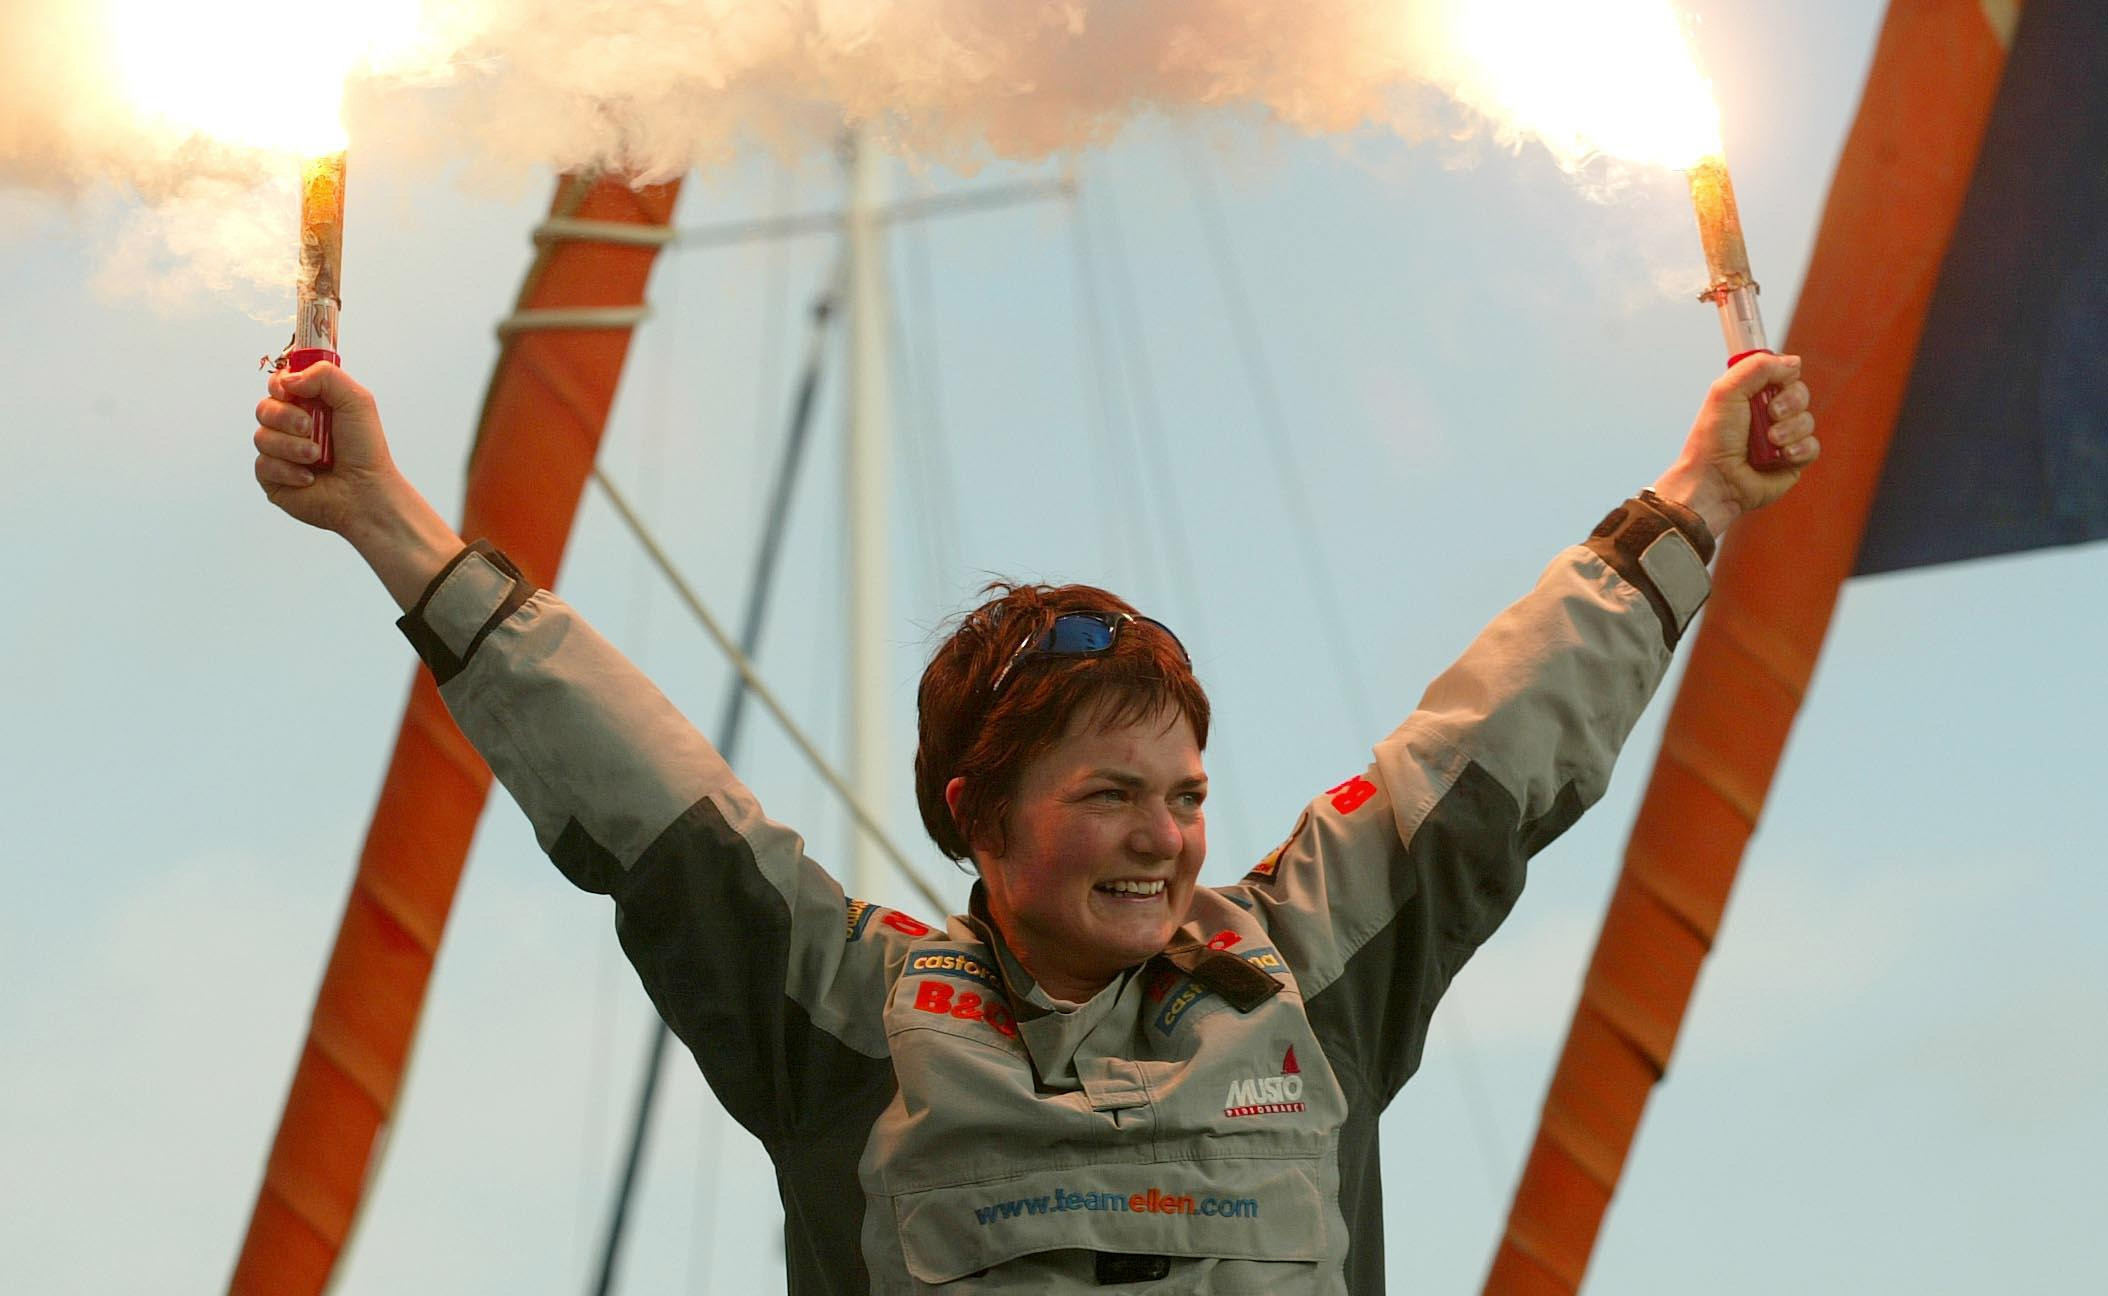 Dame Ellen MacArthur celebrates becoming the fastest person to circumnavigate the globe single-handed